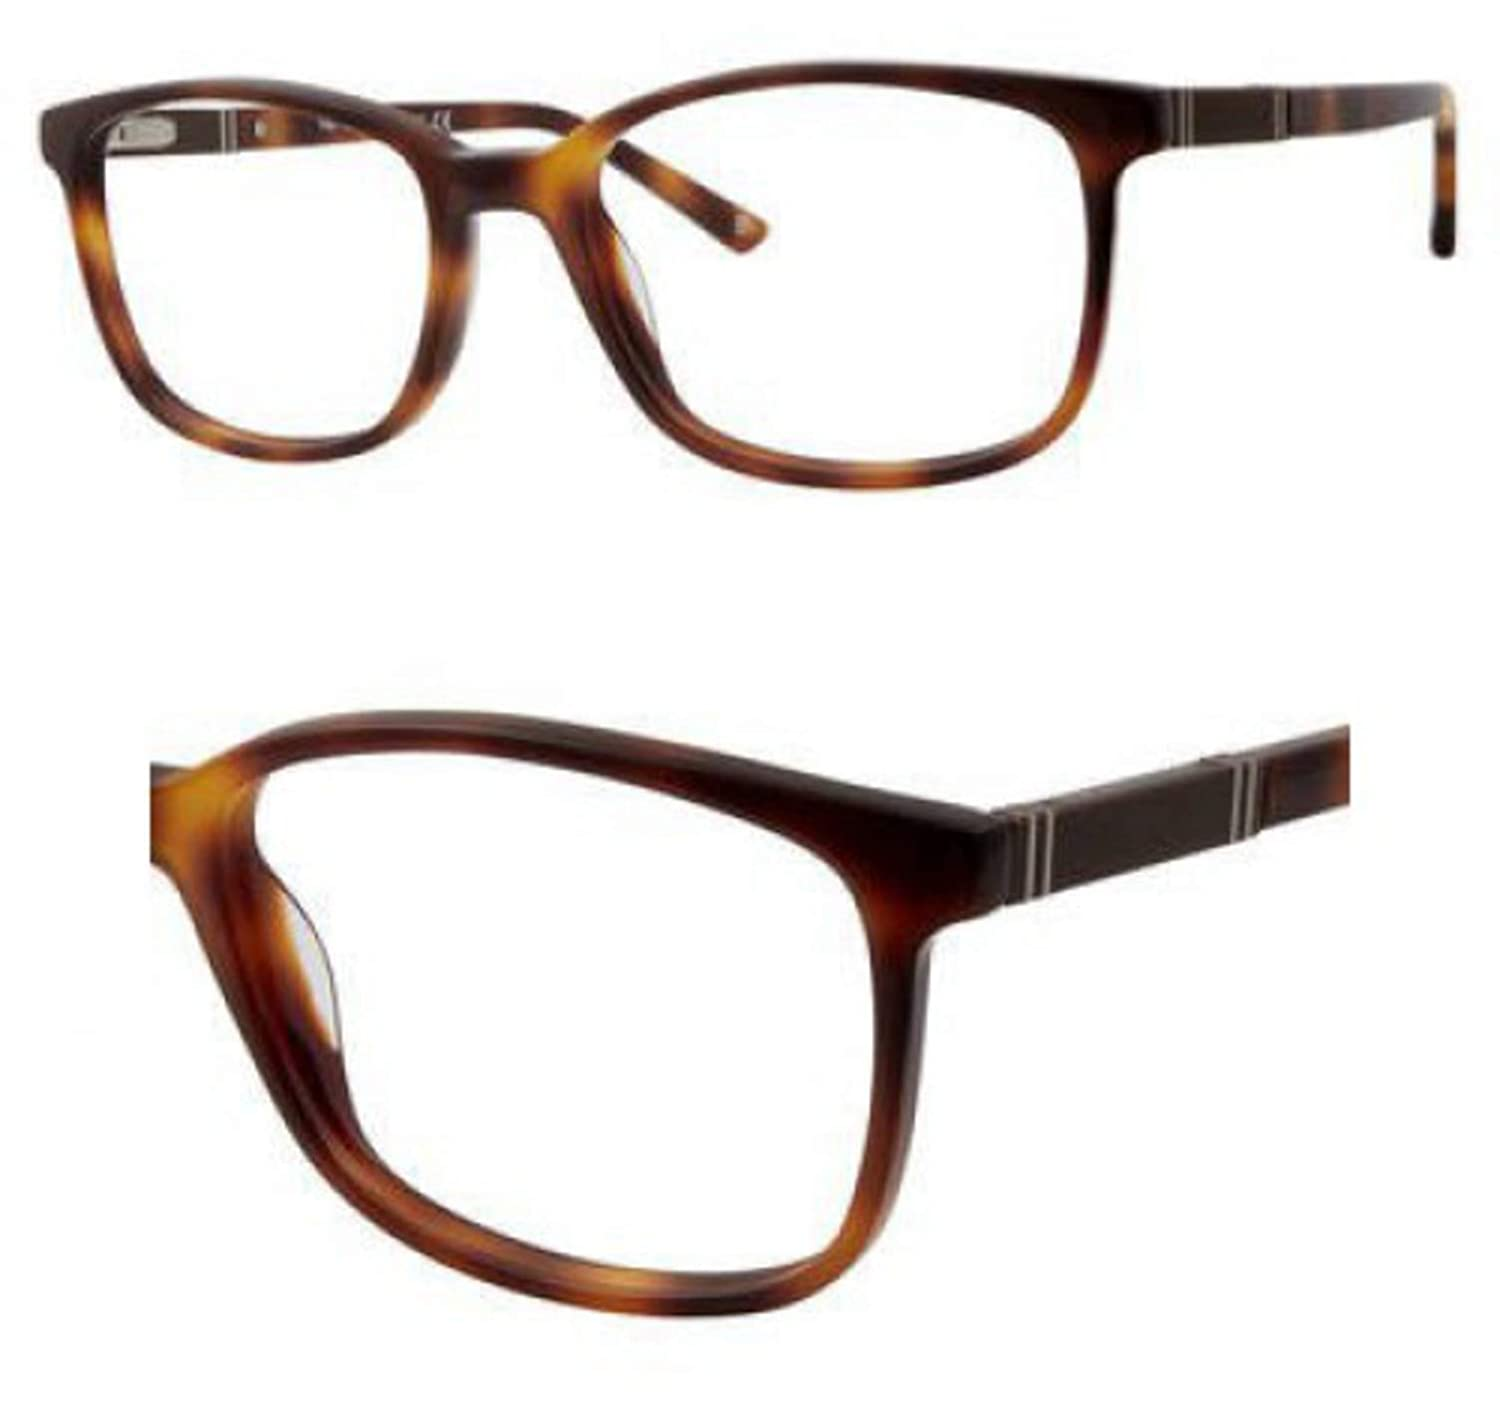 Sunglasses Banana Republic Kayden 0WR9 Brown Havana